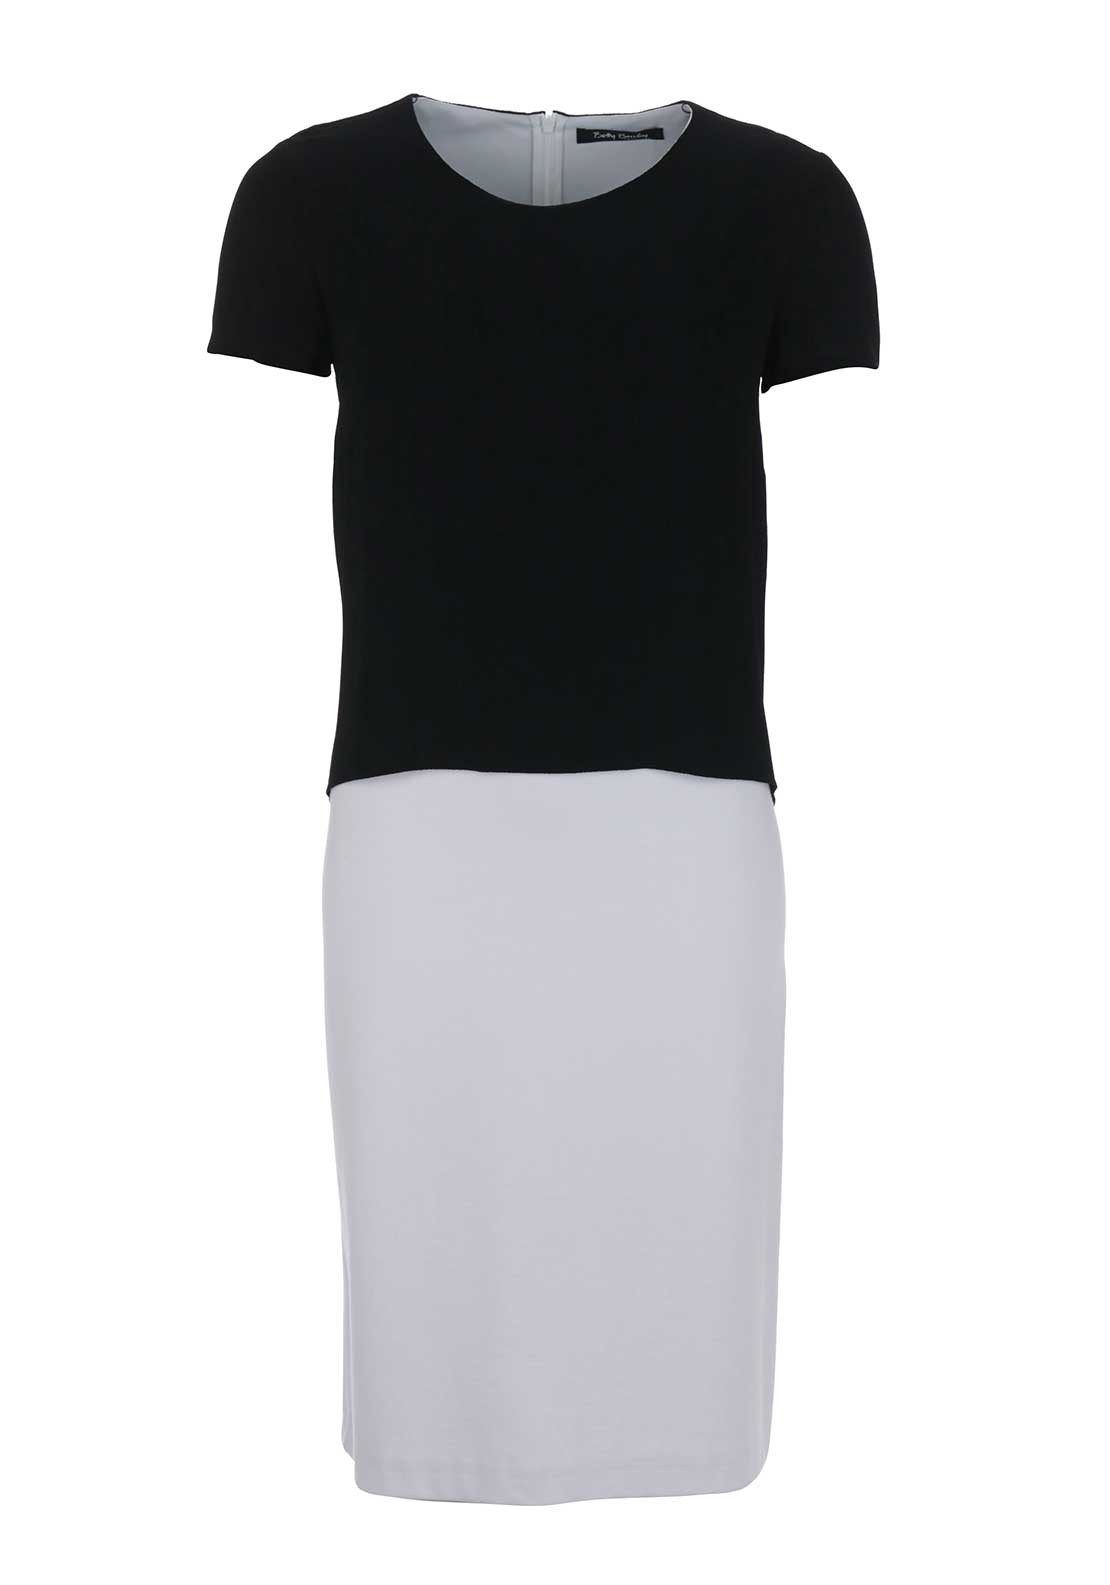 Betty Barclay Crepe Overlay Monochrome Jersey Pencil Dress, Black and White